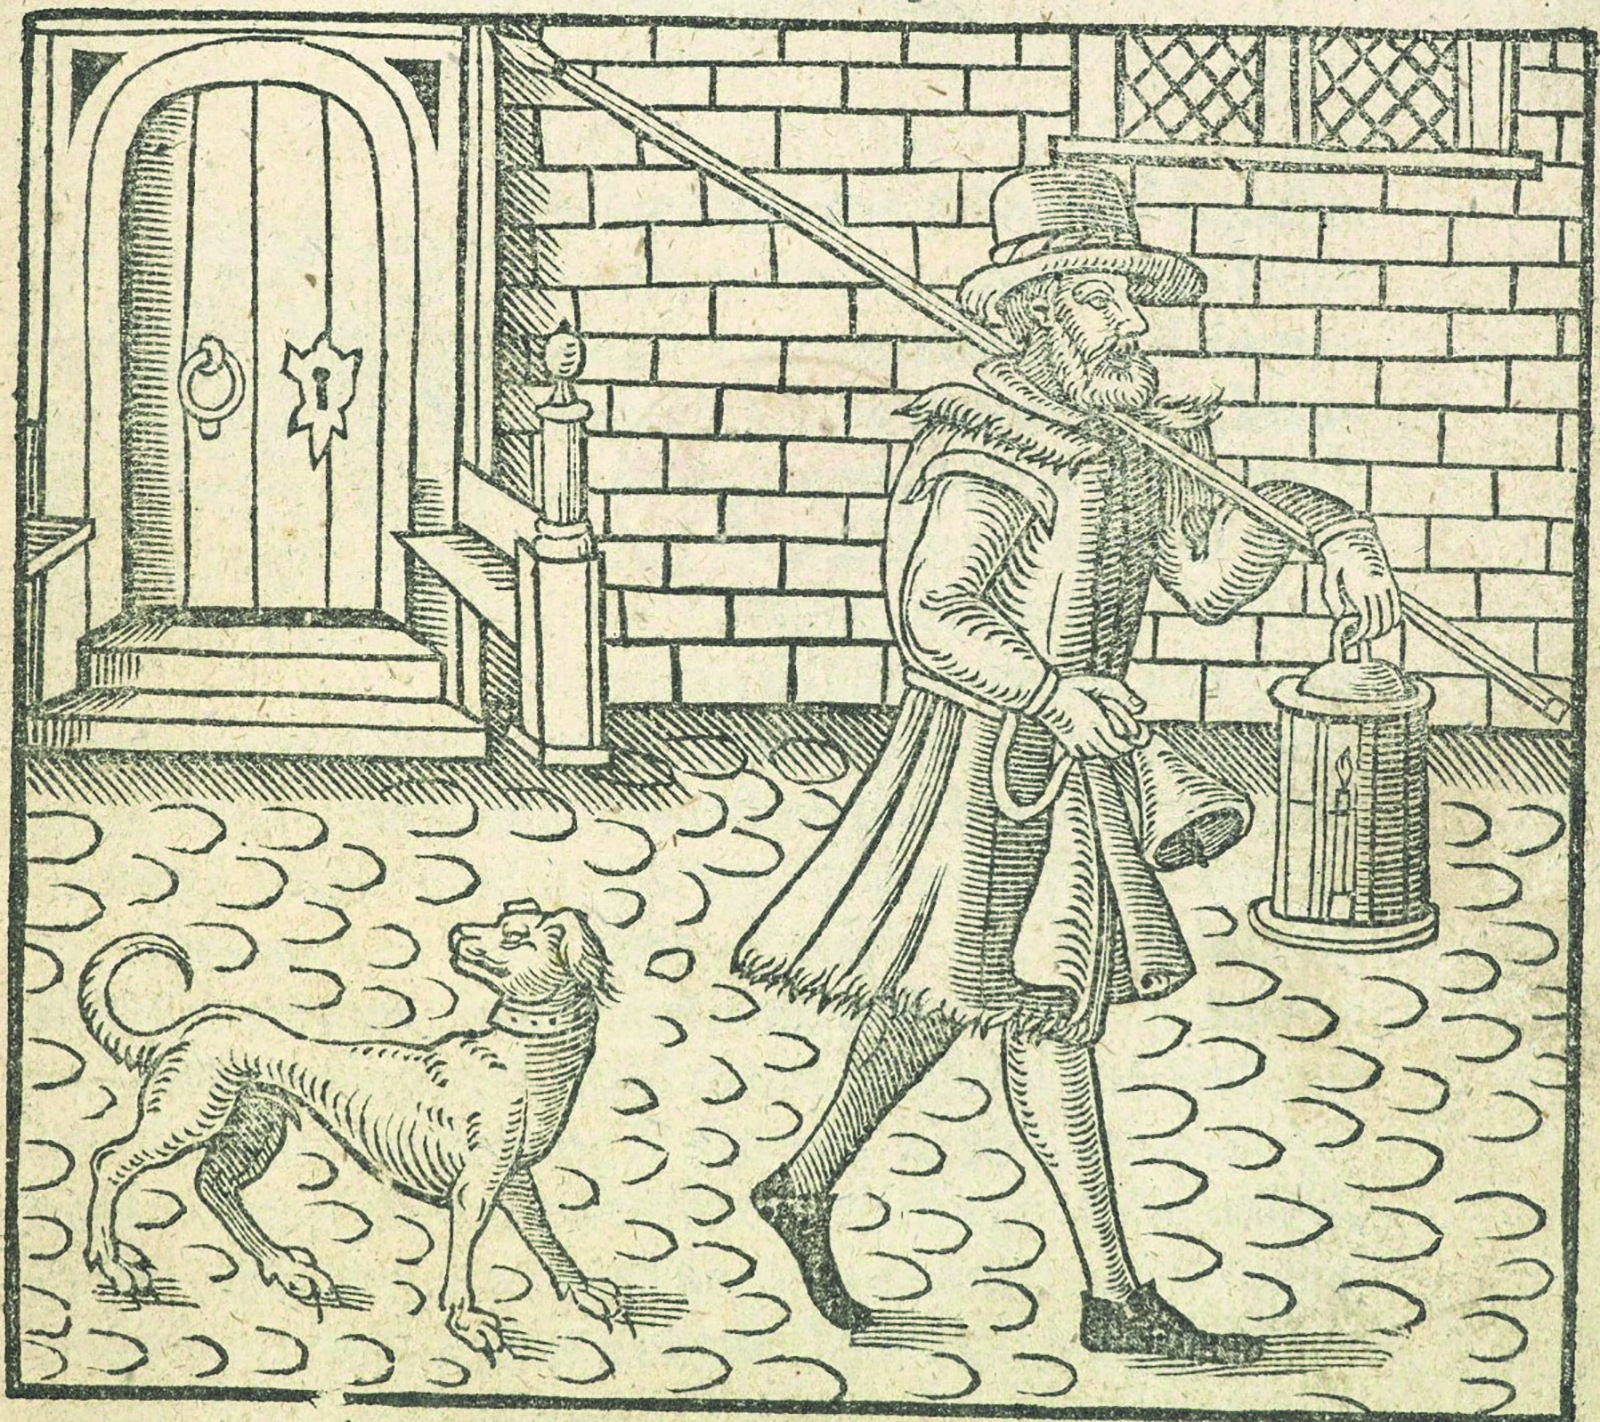 Frontispiece to a pamphlet depicting a man holding a lantern and bell, followed by a dog, on some cobbled streets.